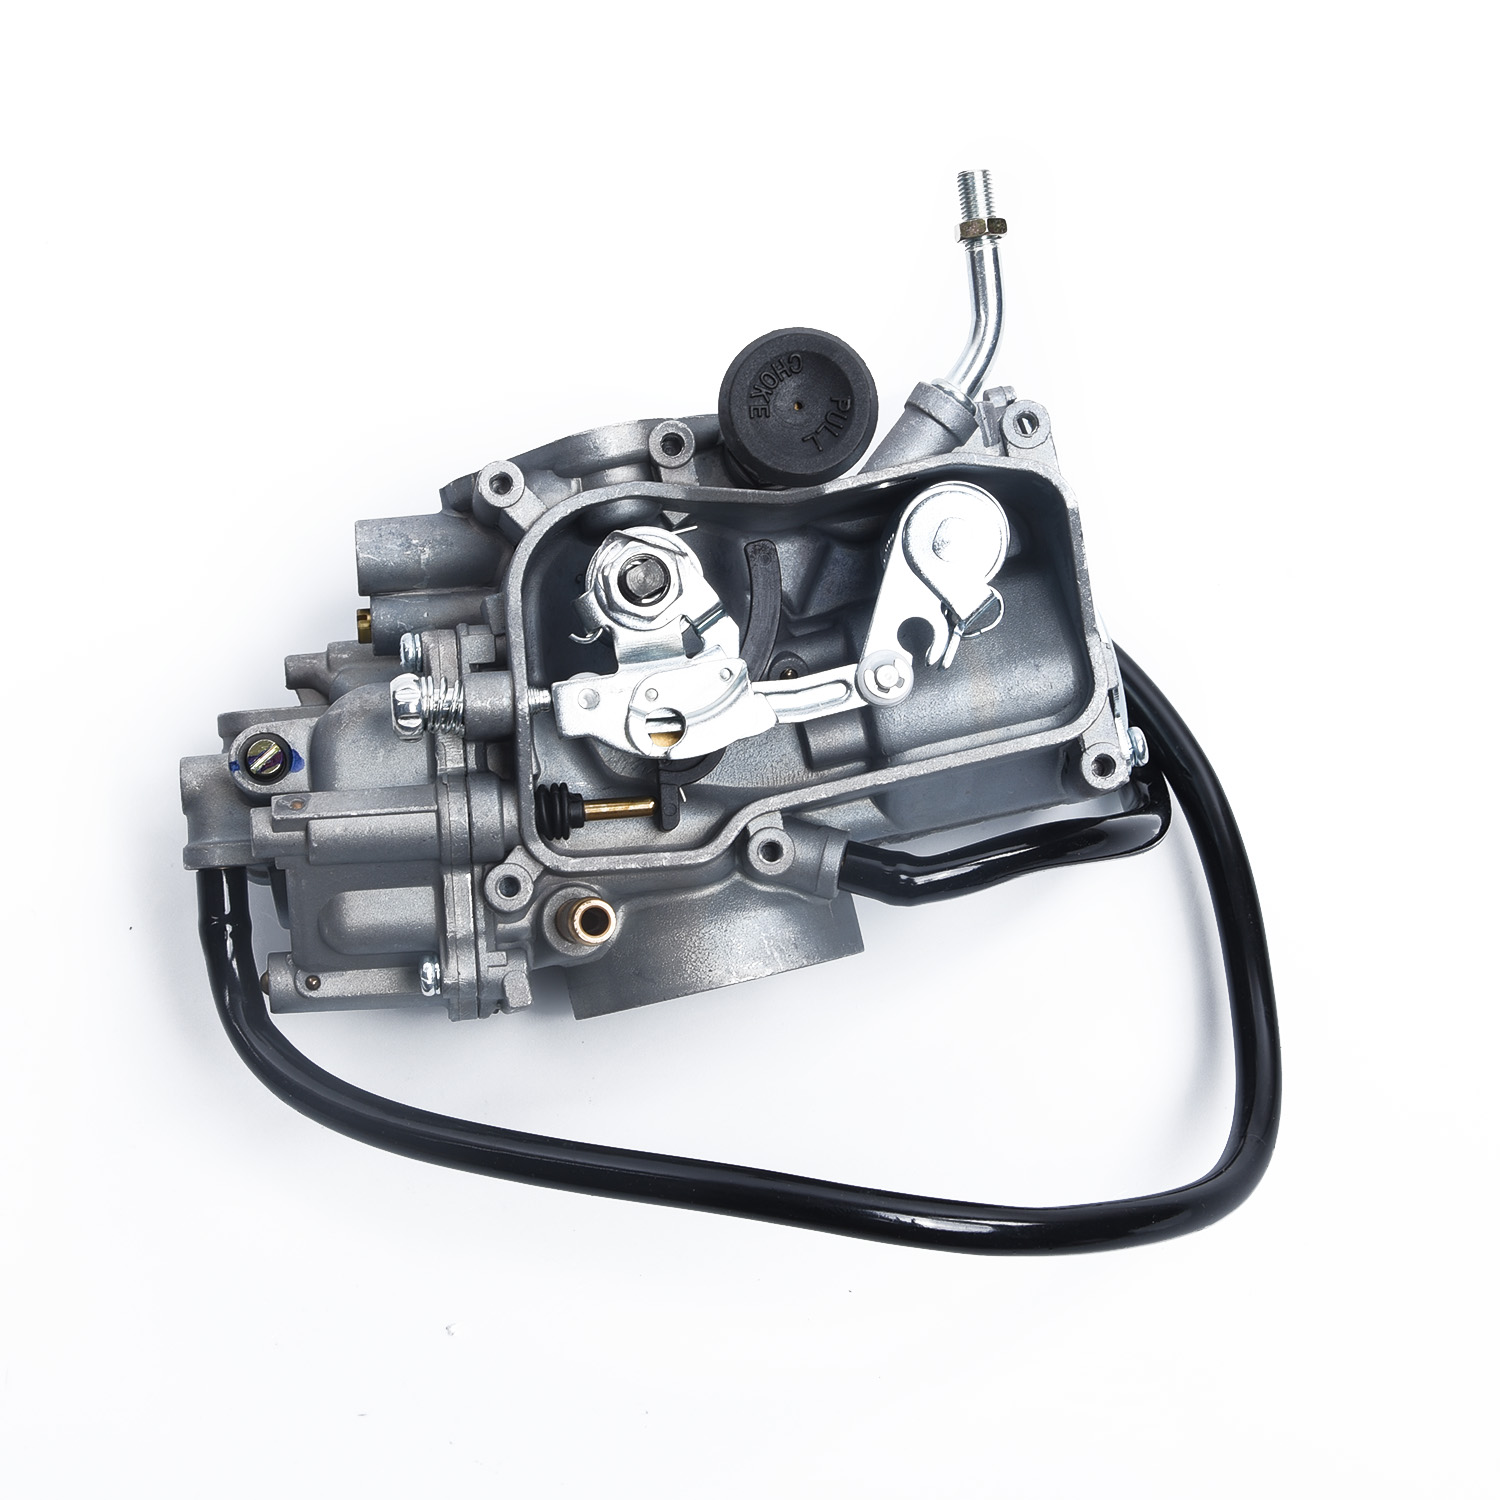 Replacement Carburetor Carb Fuel Systems For YAMAHA WARRIOR 350 YFM350 99-04 New